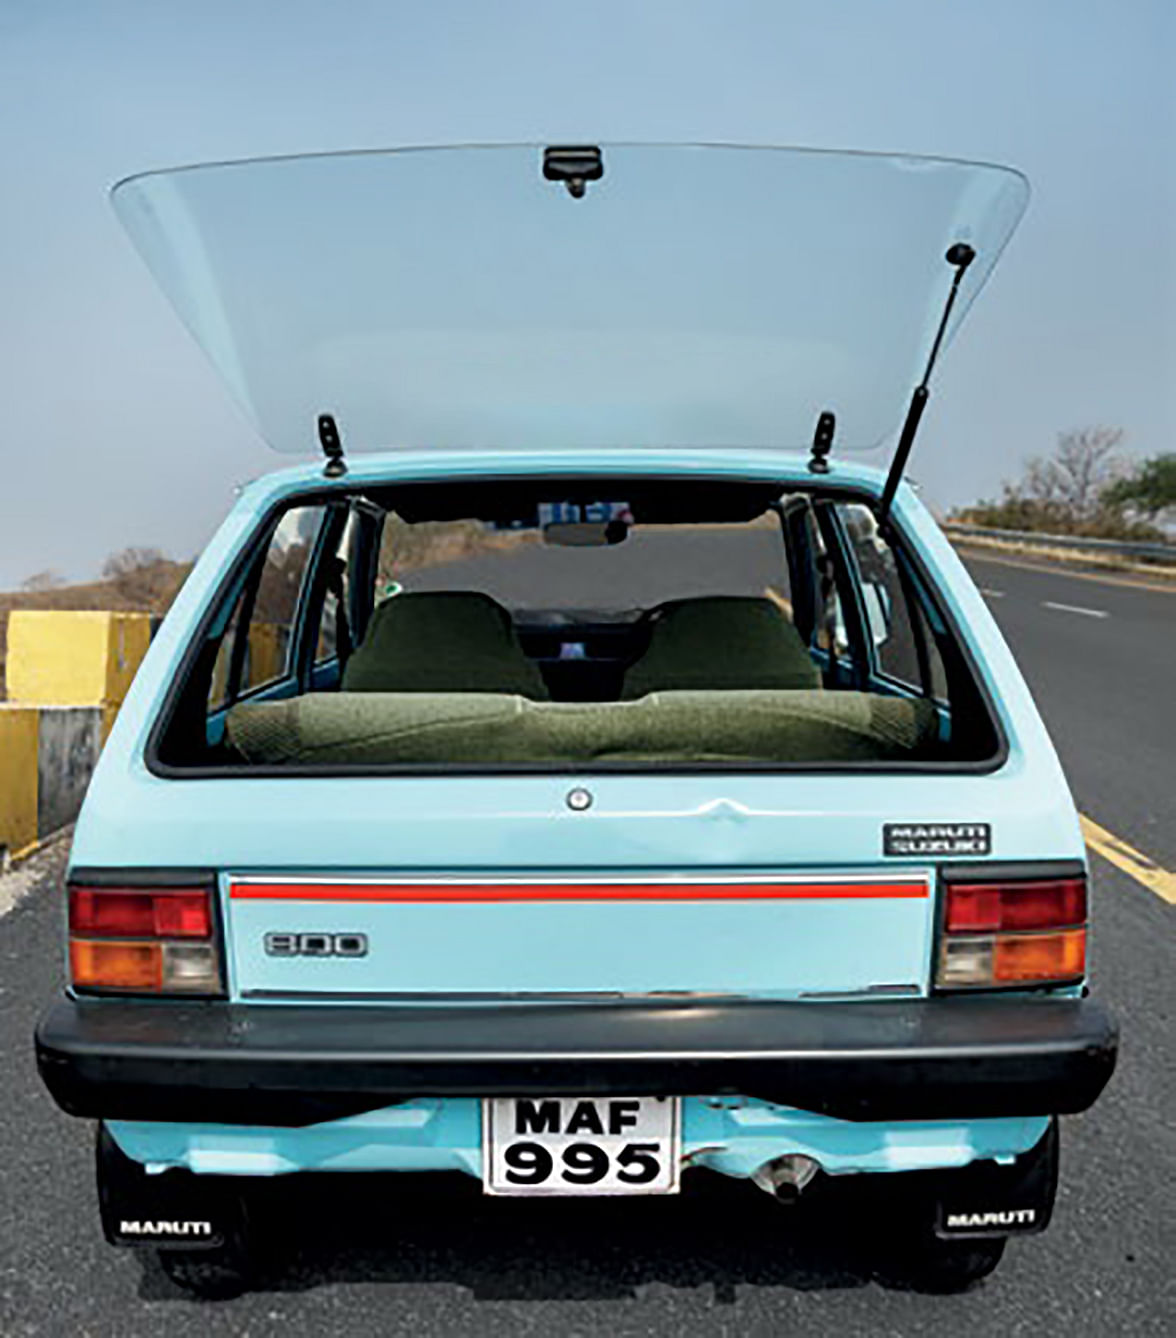 Honda Brio who? The M800 had the glass hatch way back when!